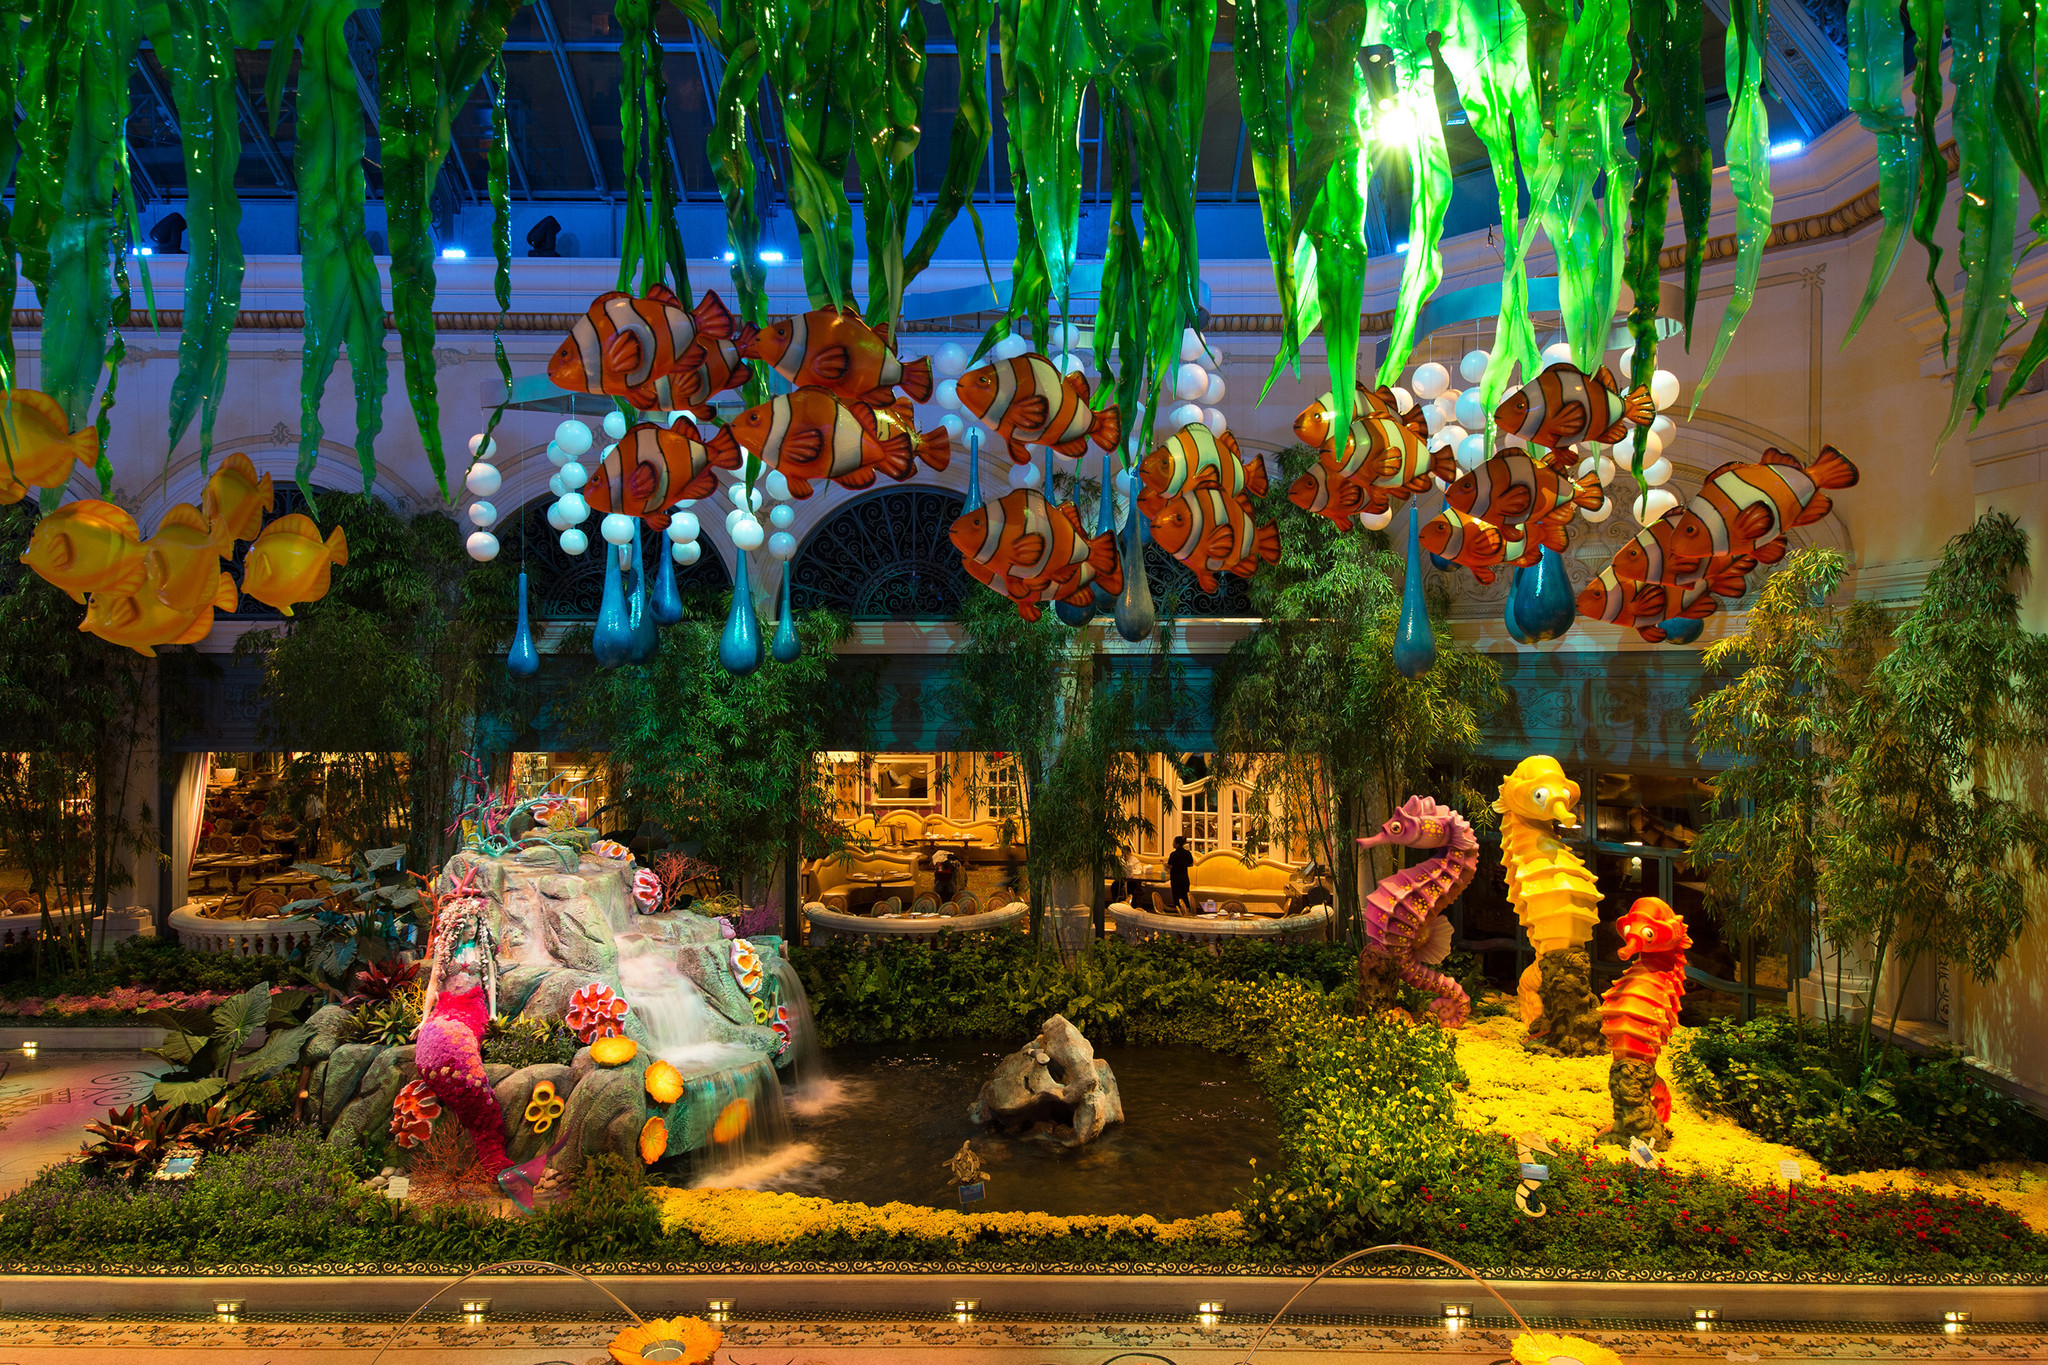 Bellagio gardens create underwater ocean scenes in flowers - Los ...